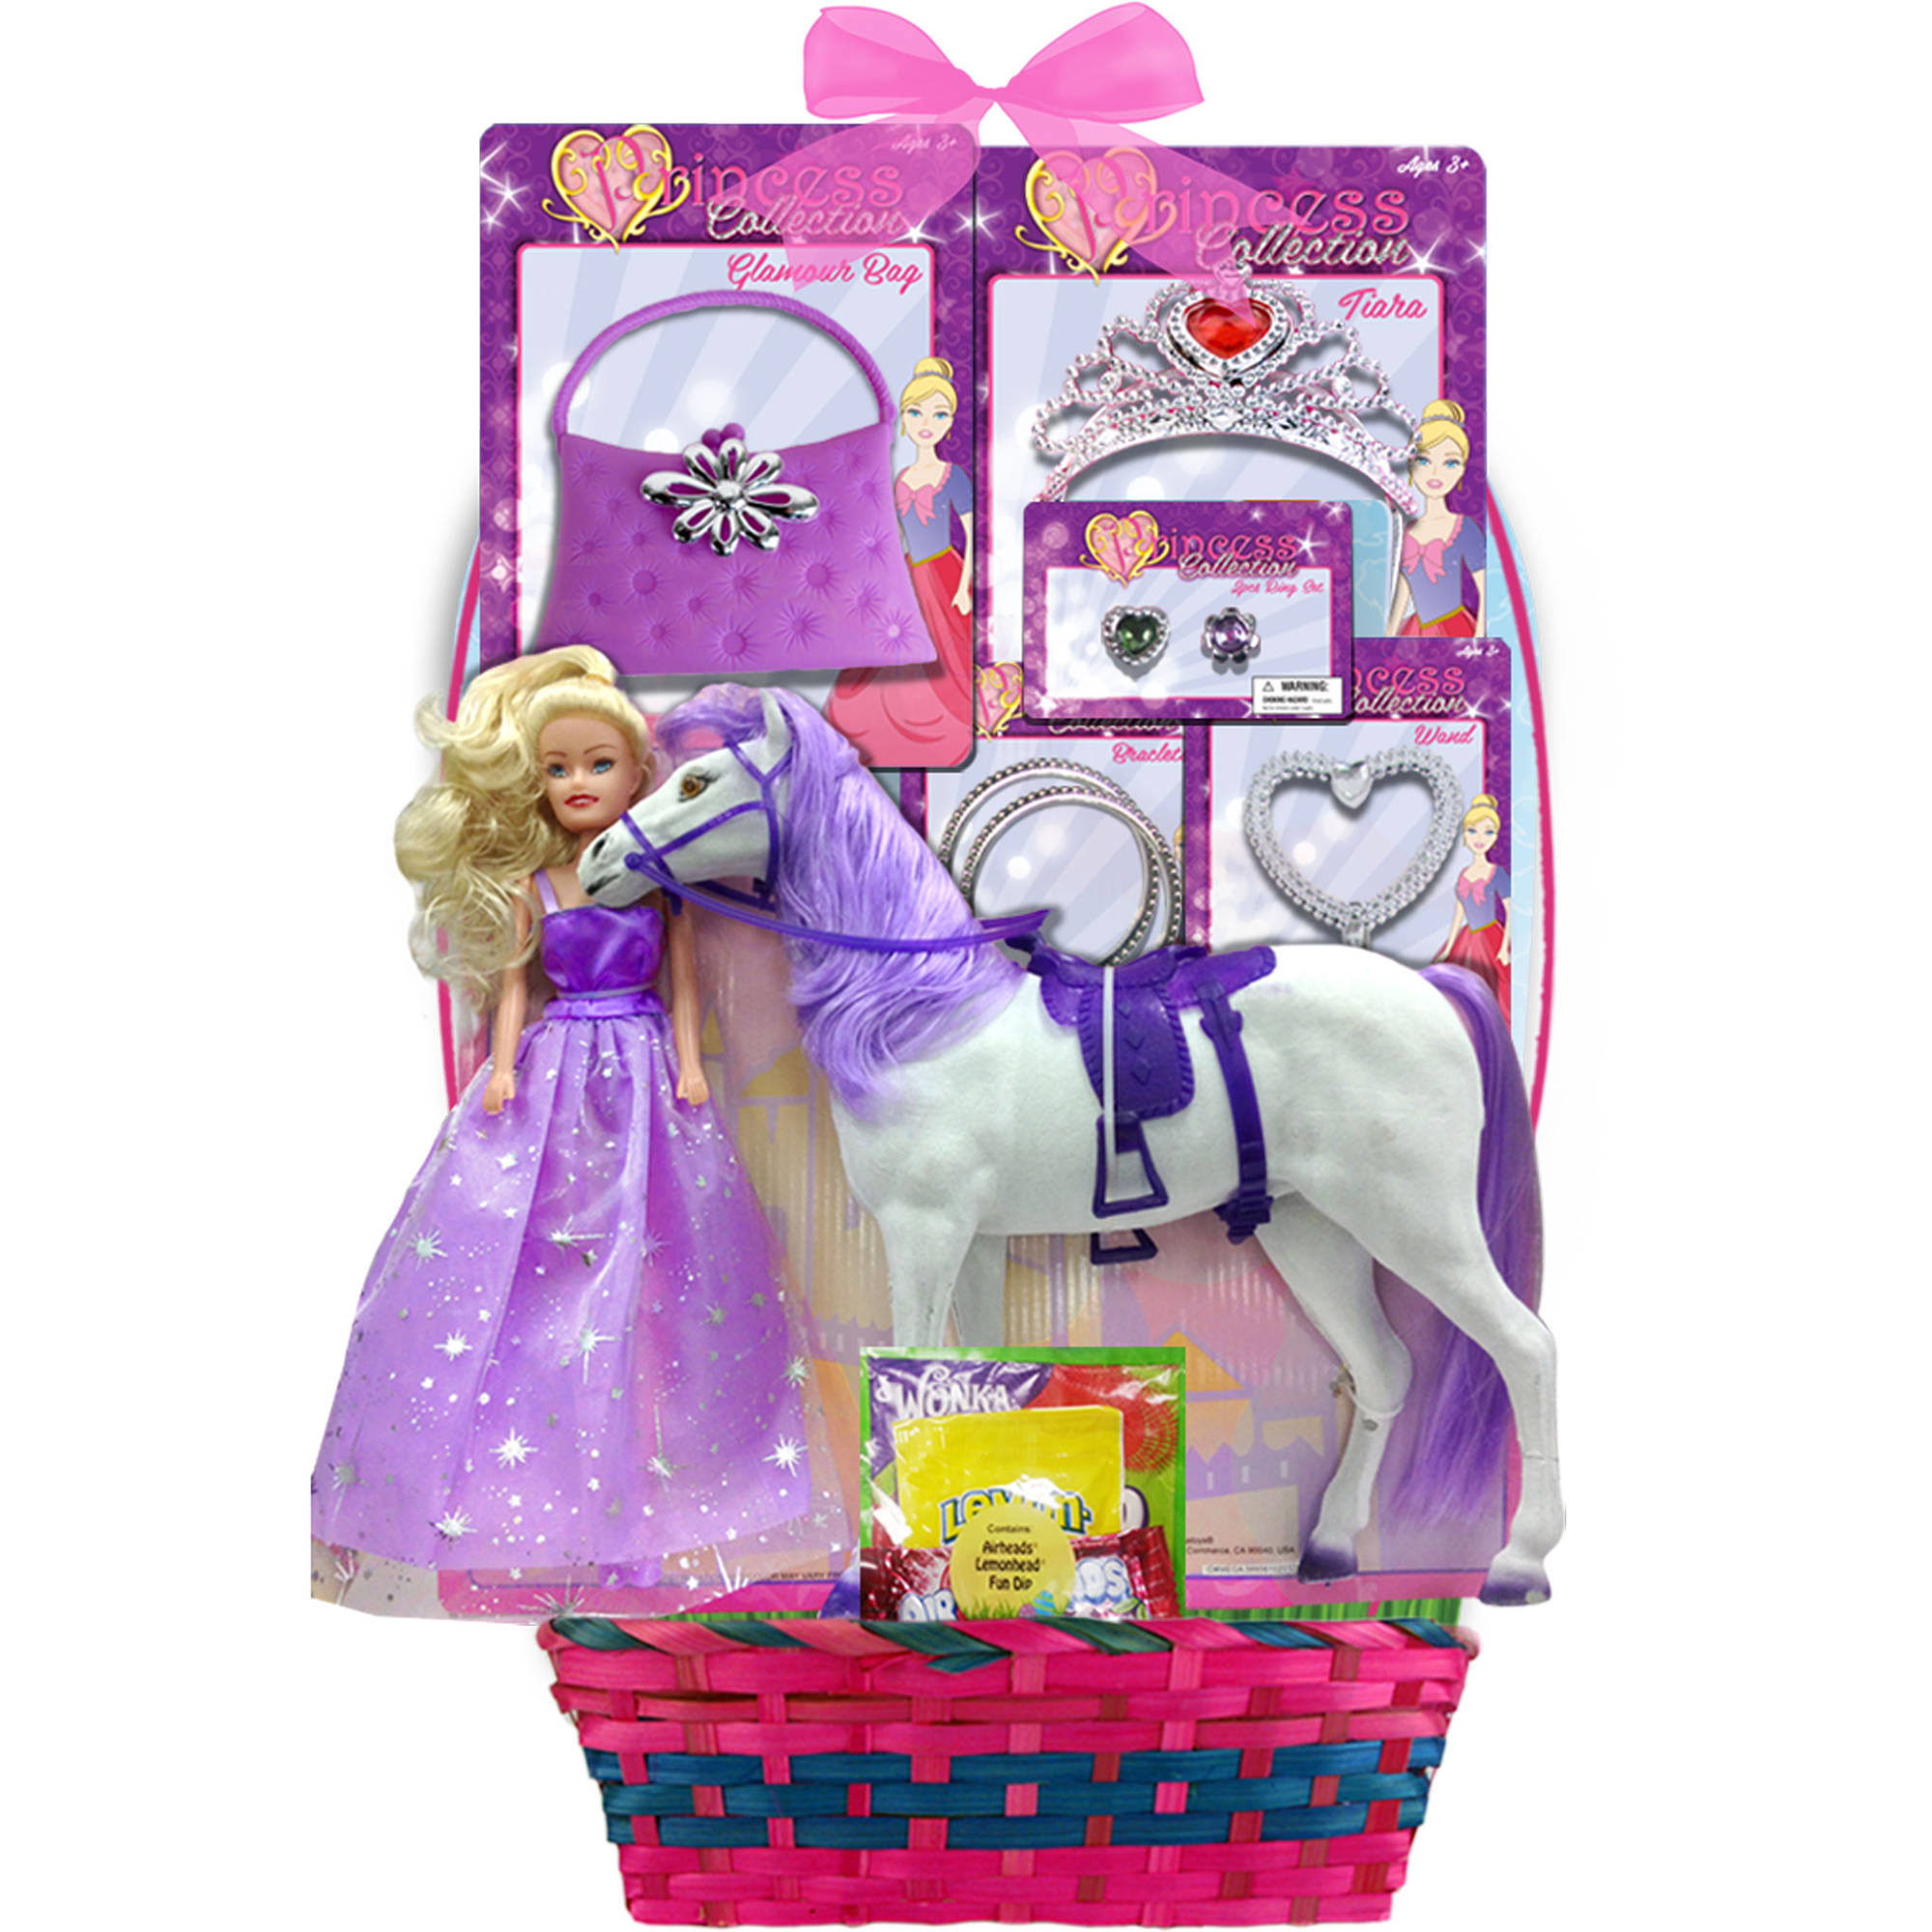 Megatoys Pony Princess & Candies Easter Basket